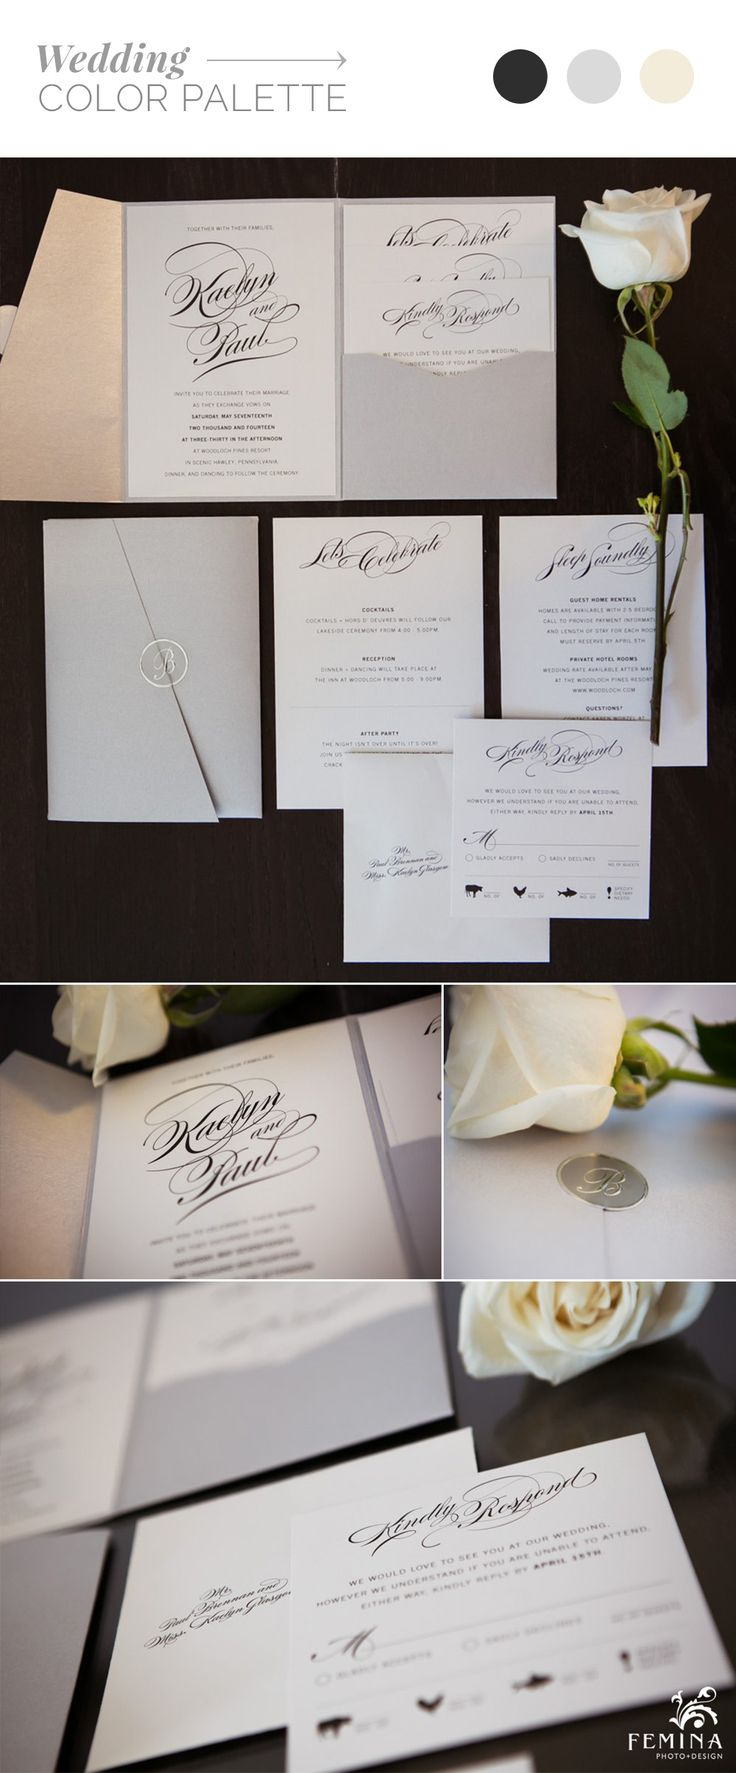 Ivory and light Silver pearlized invitations with